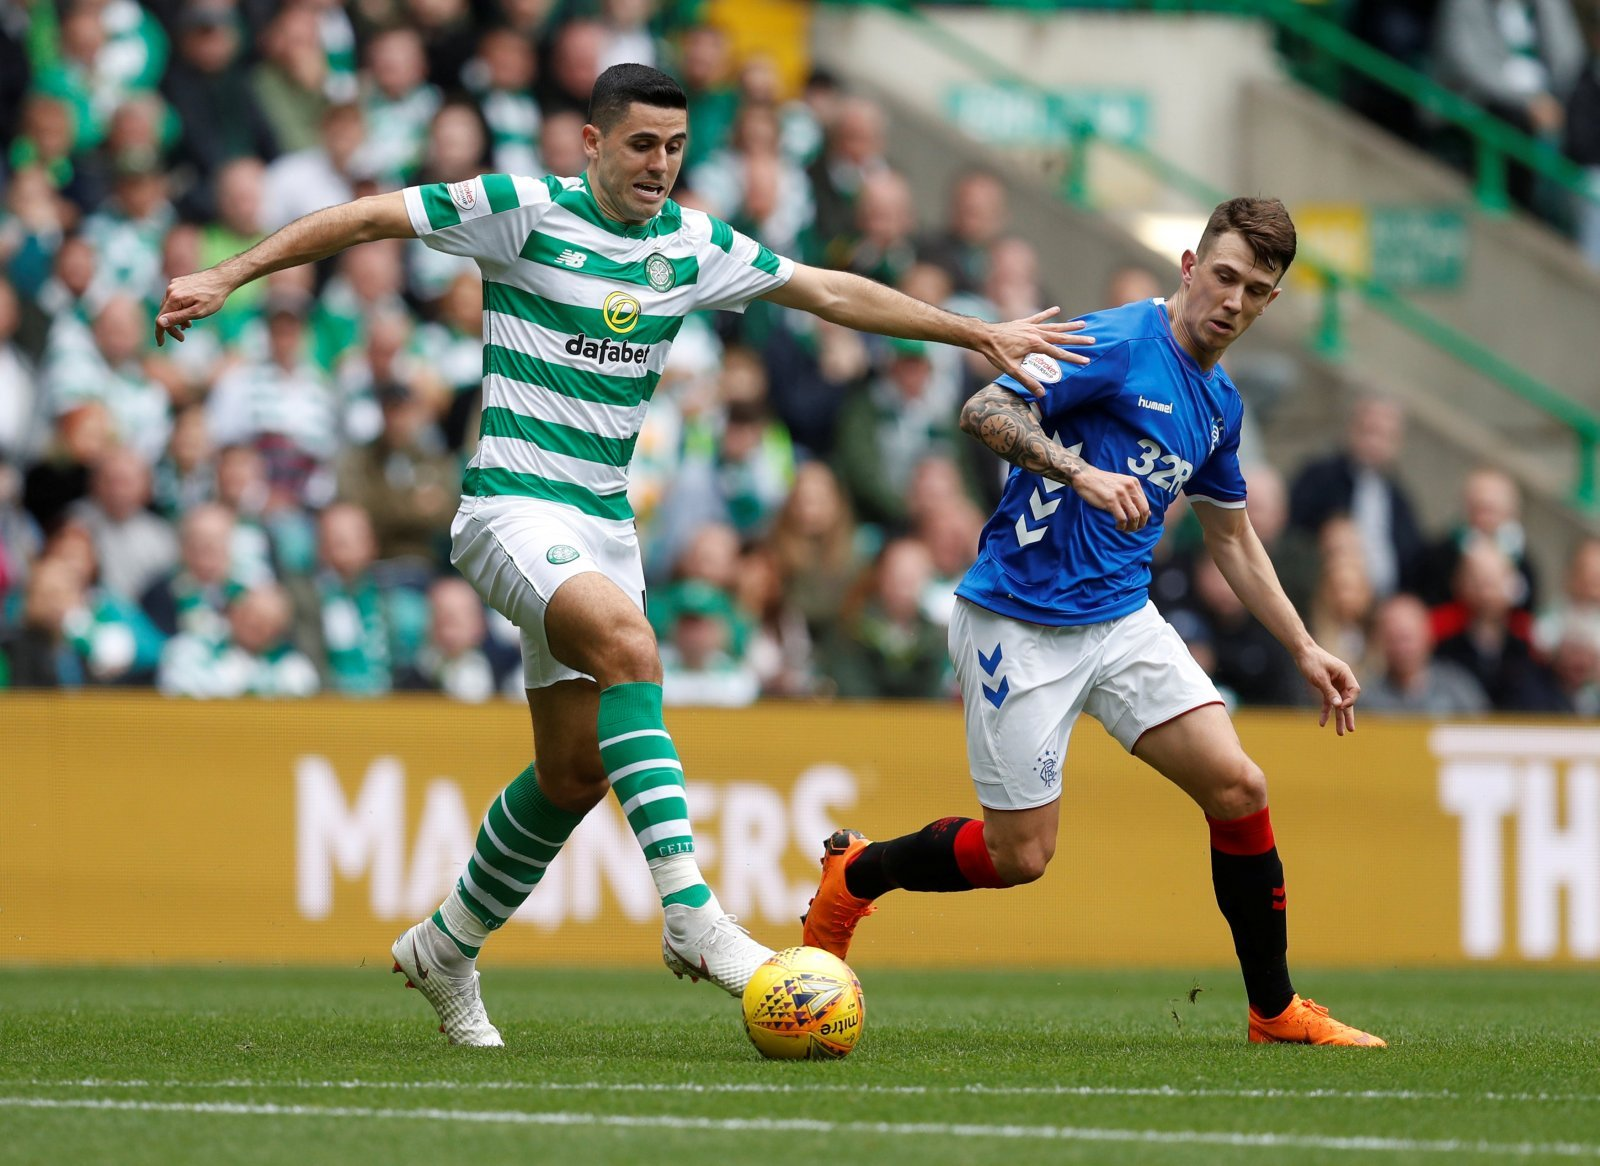 Celtic: Tom Rogic returns to training for Hoops